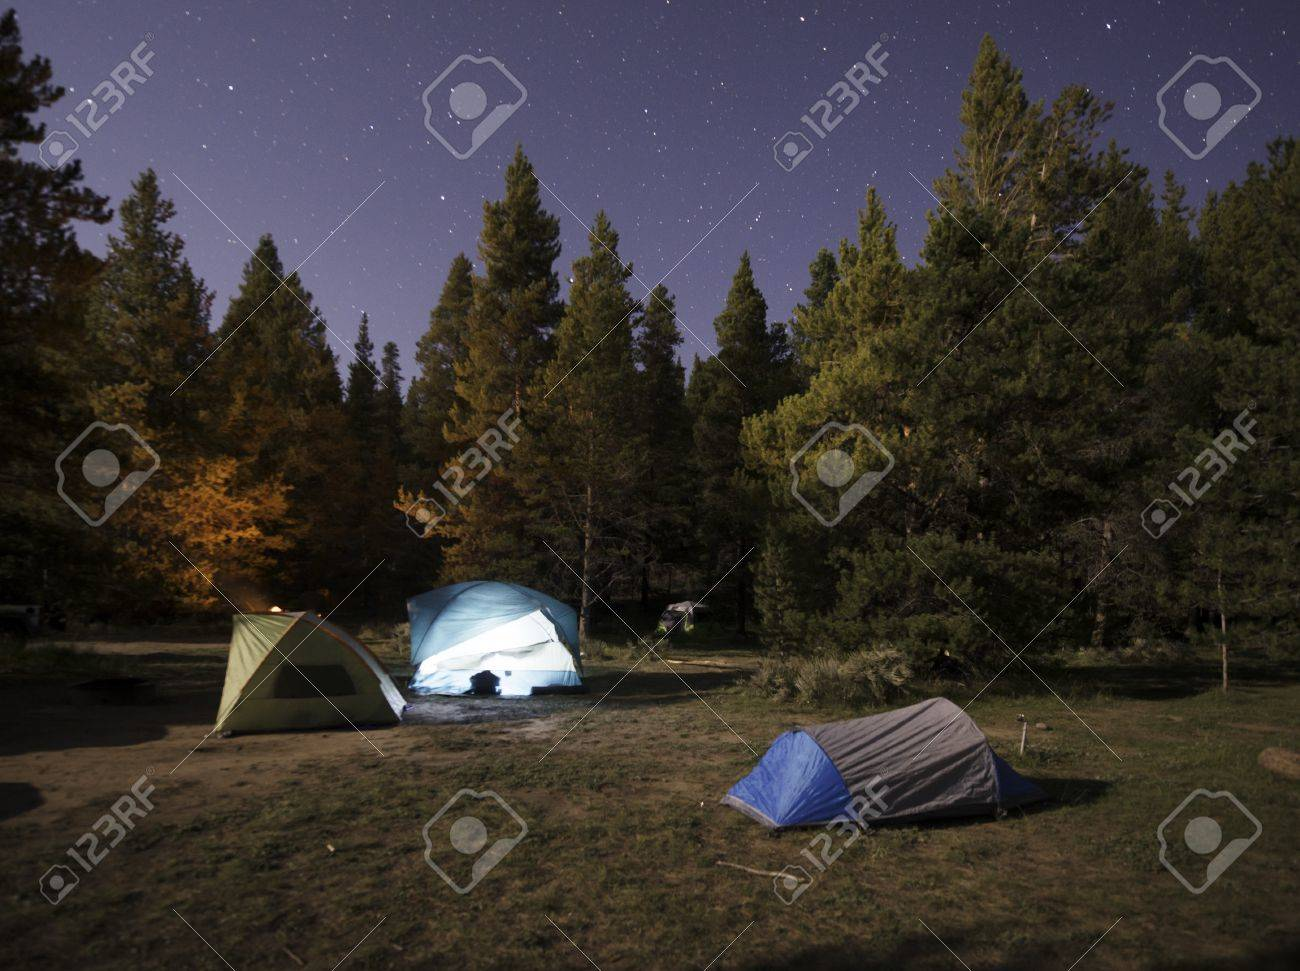 Camping in the Rockies Stock Photo - 21889515